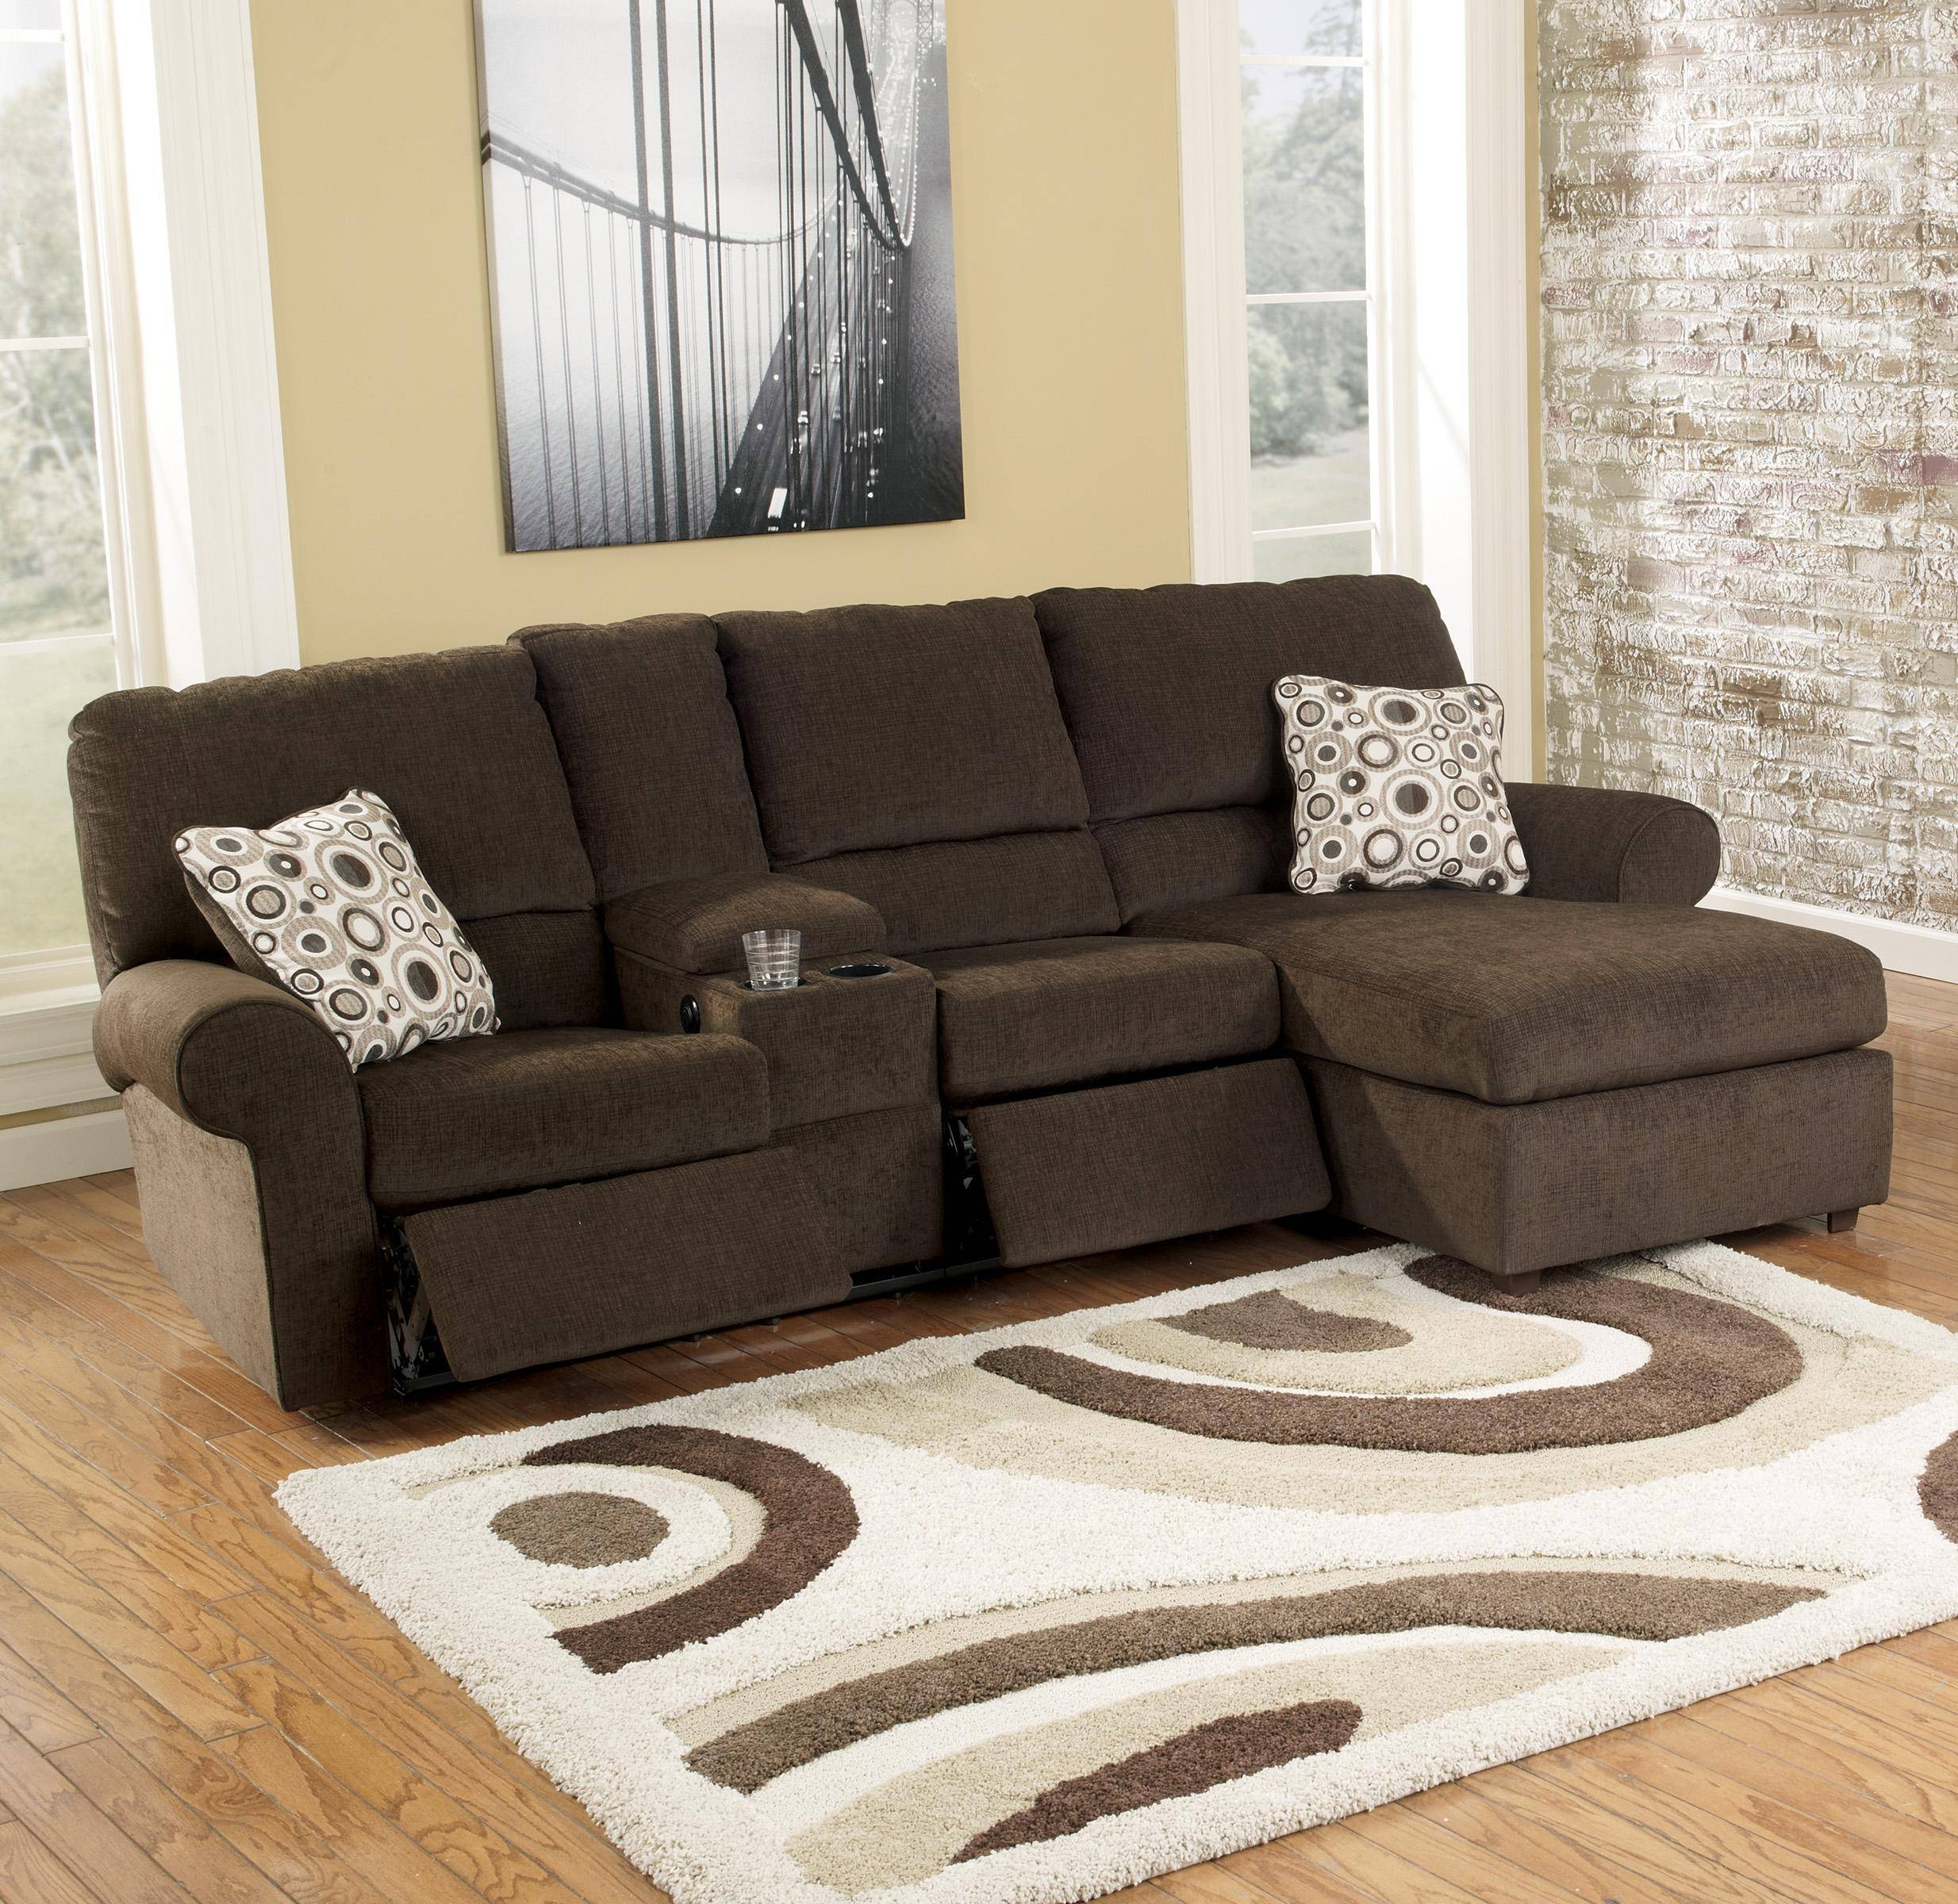 Sectional Sofa With Recliner And Chaise Lounge - Cleanupflorida throughout Backless Chaise Sofa (Image 20 of 30)